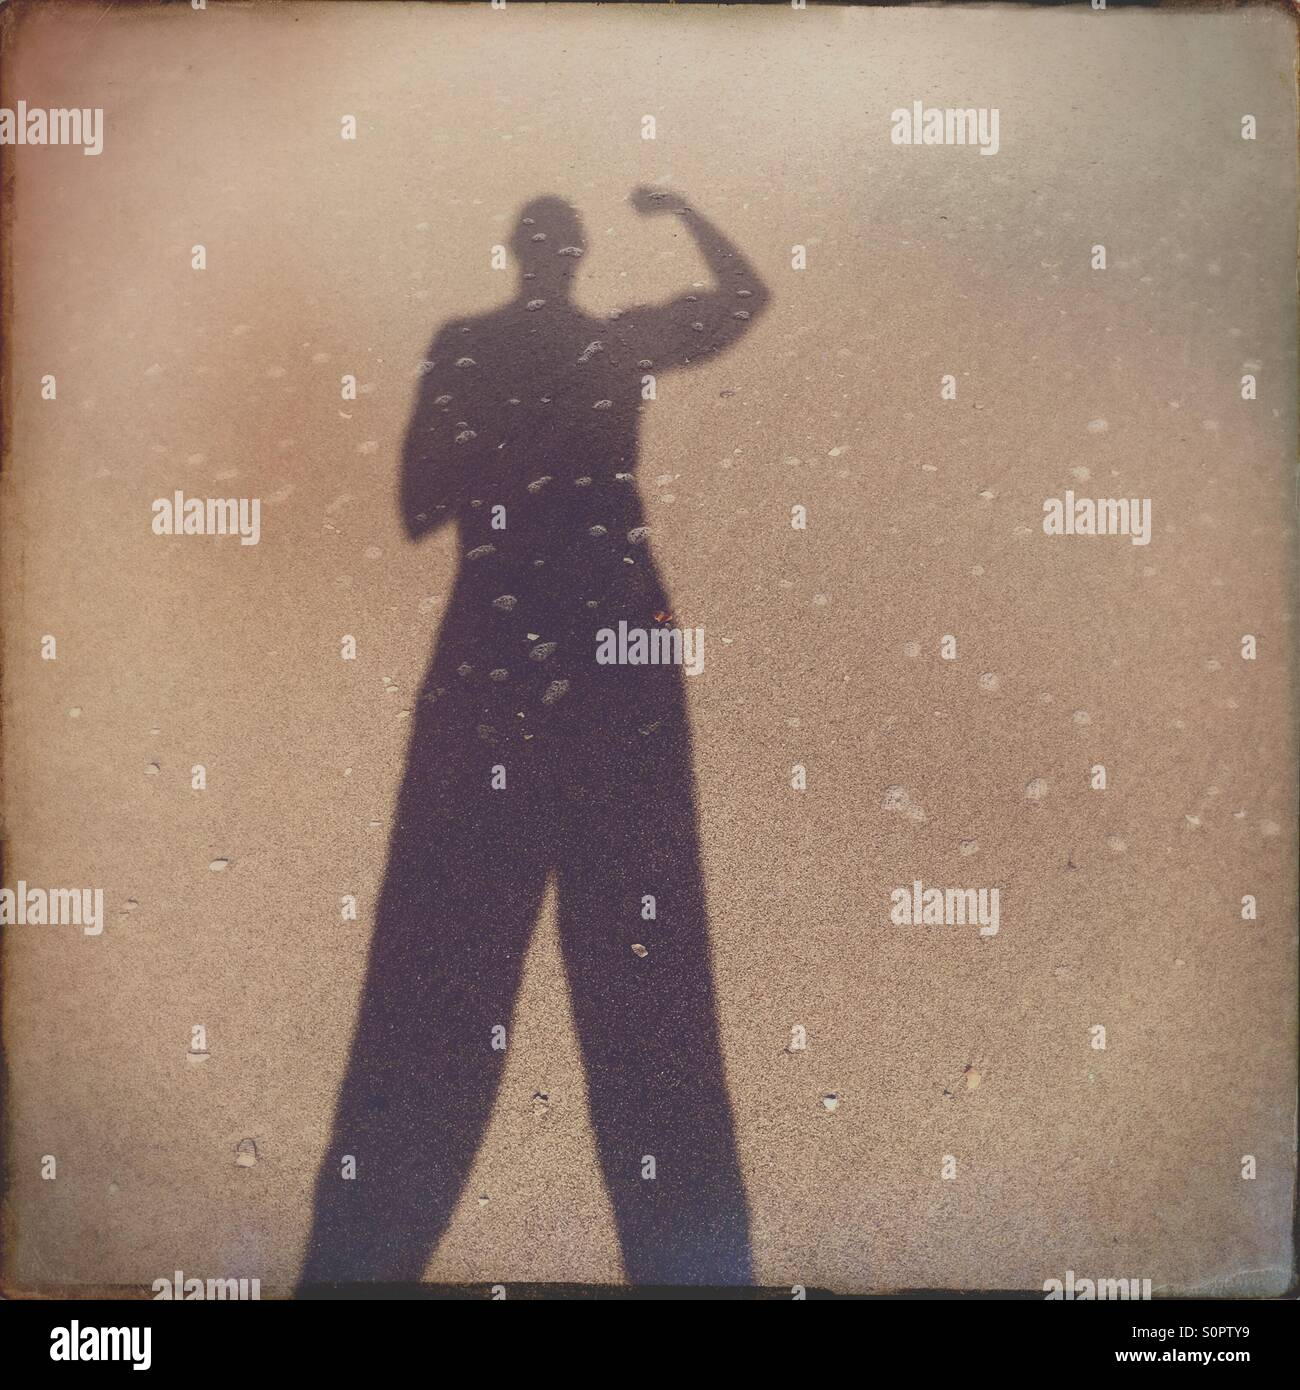 Shadow of a man - Stock Image